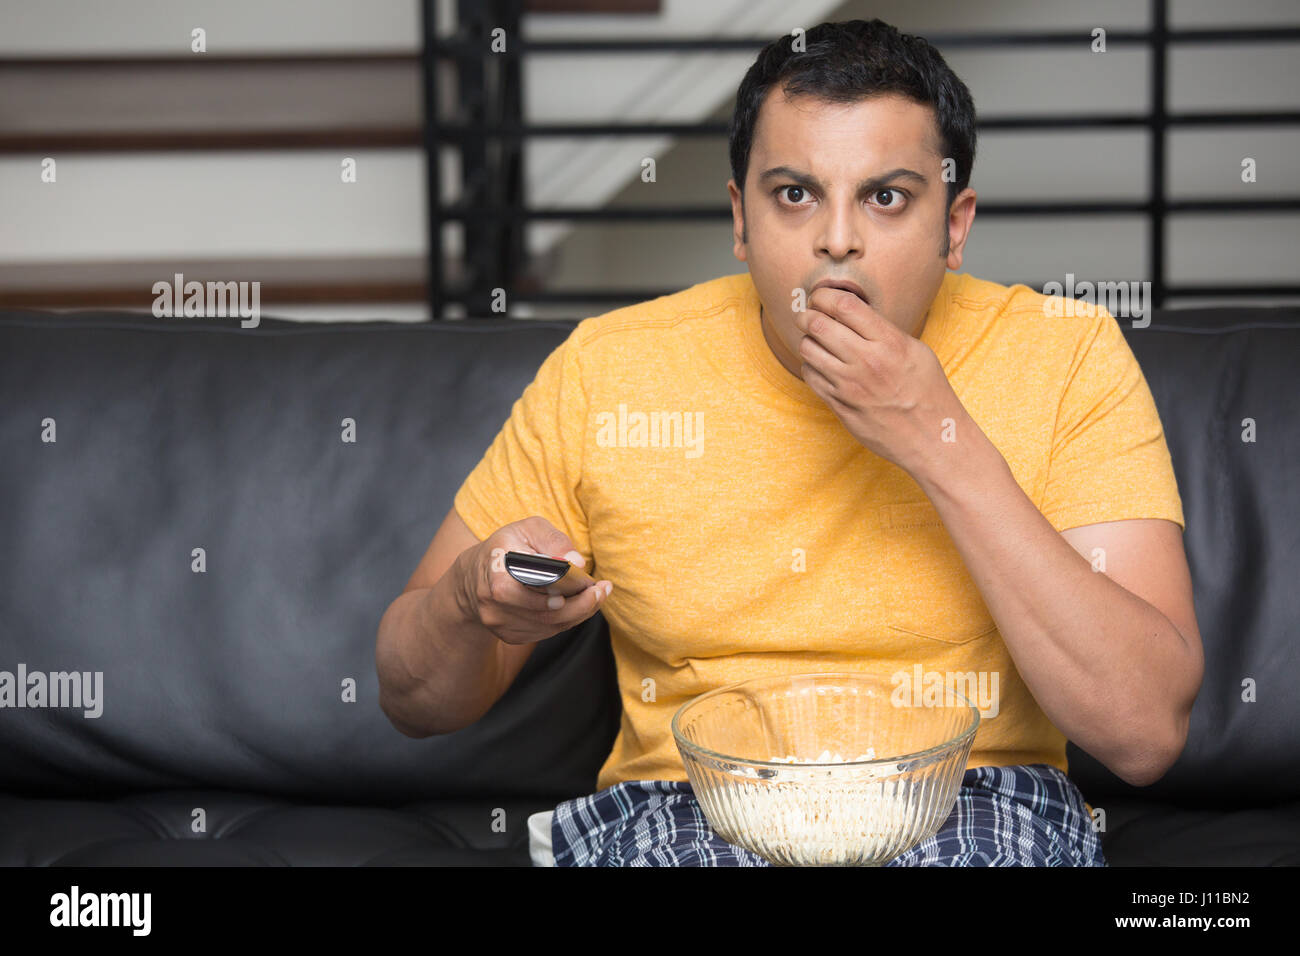 Closeup portrait, young man in yellow t-shirt, sitting on black leather couch, watching TV, holding remote, surprised - Stock Image